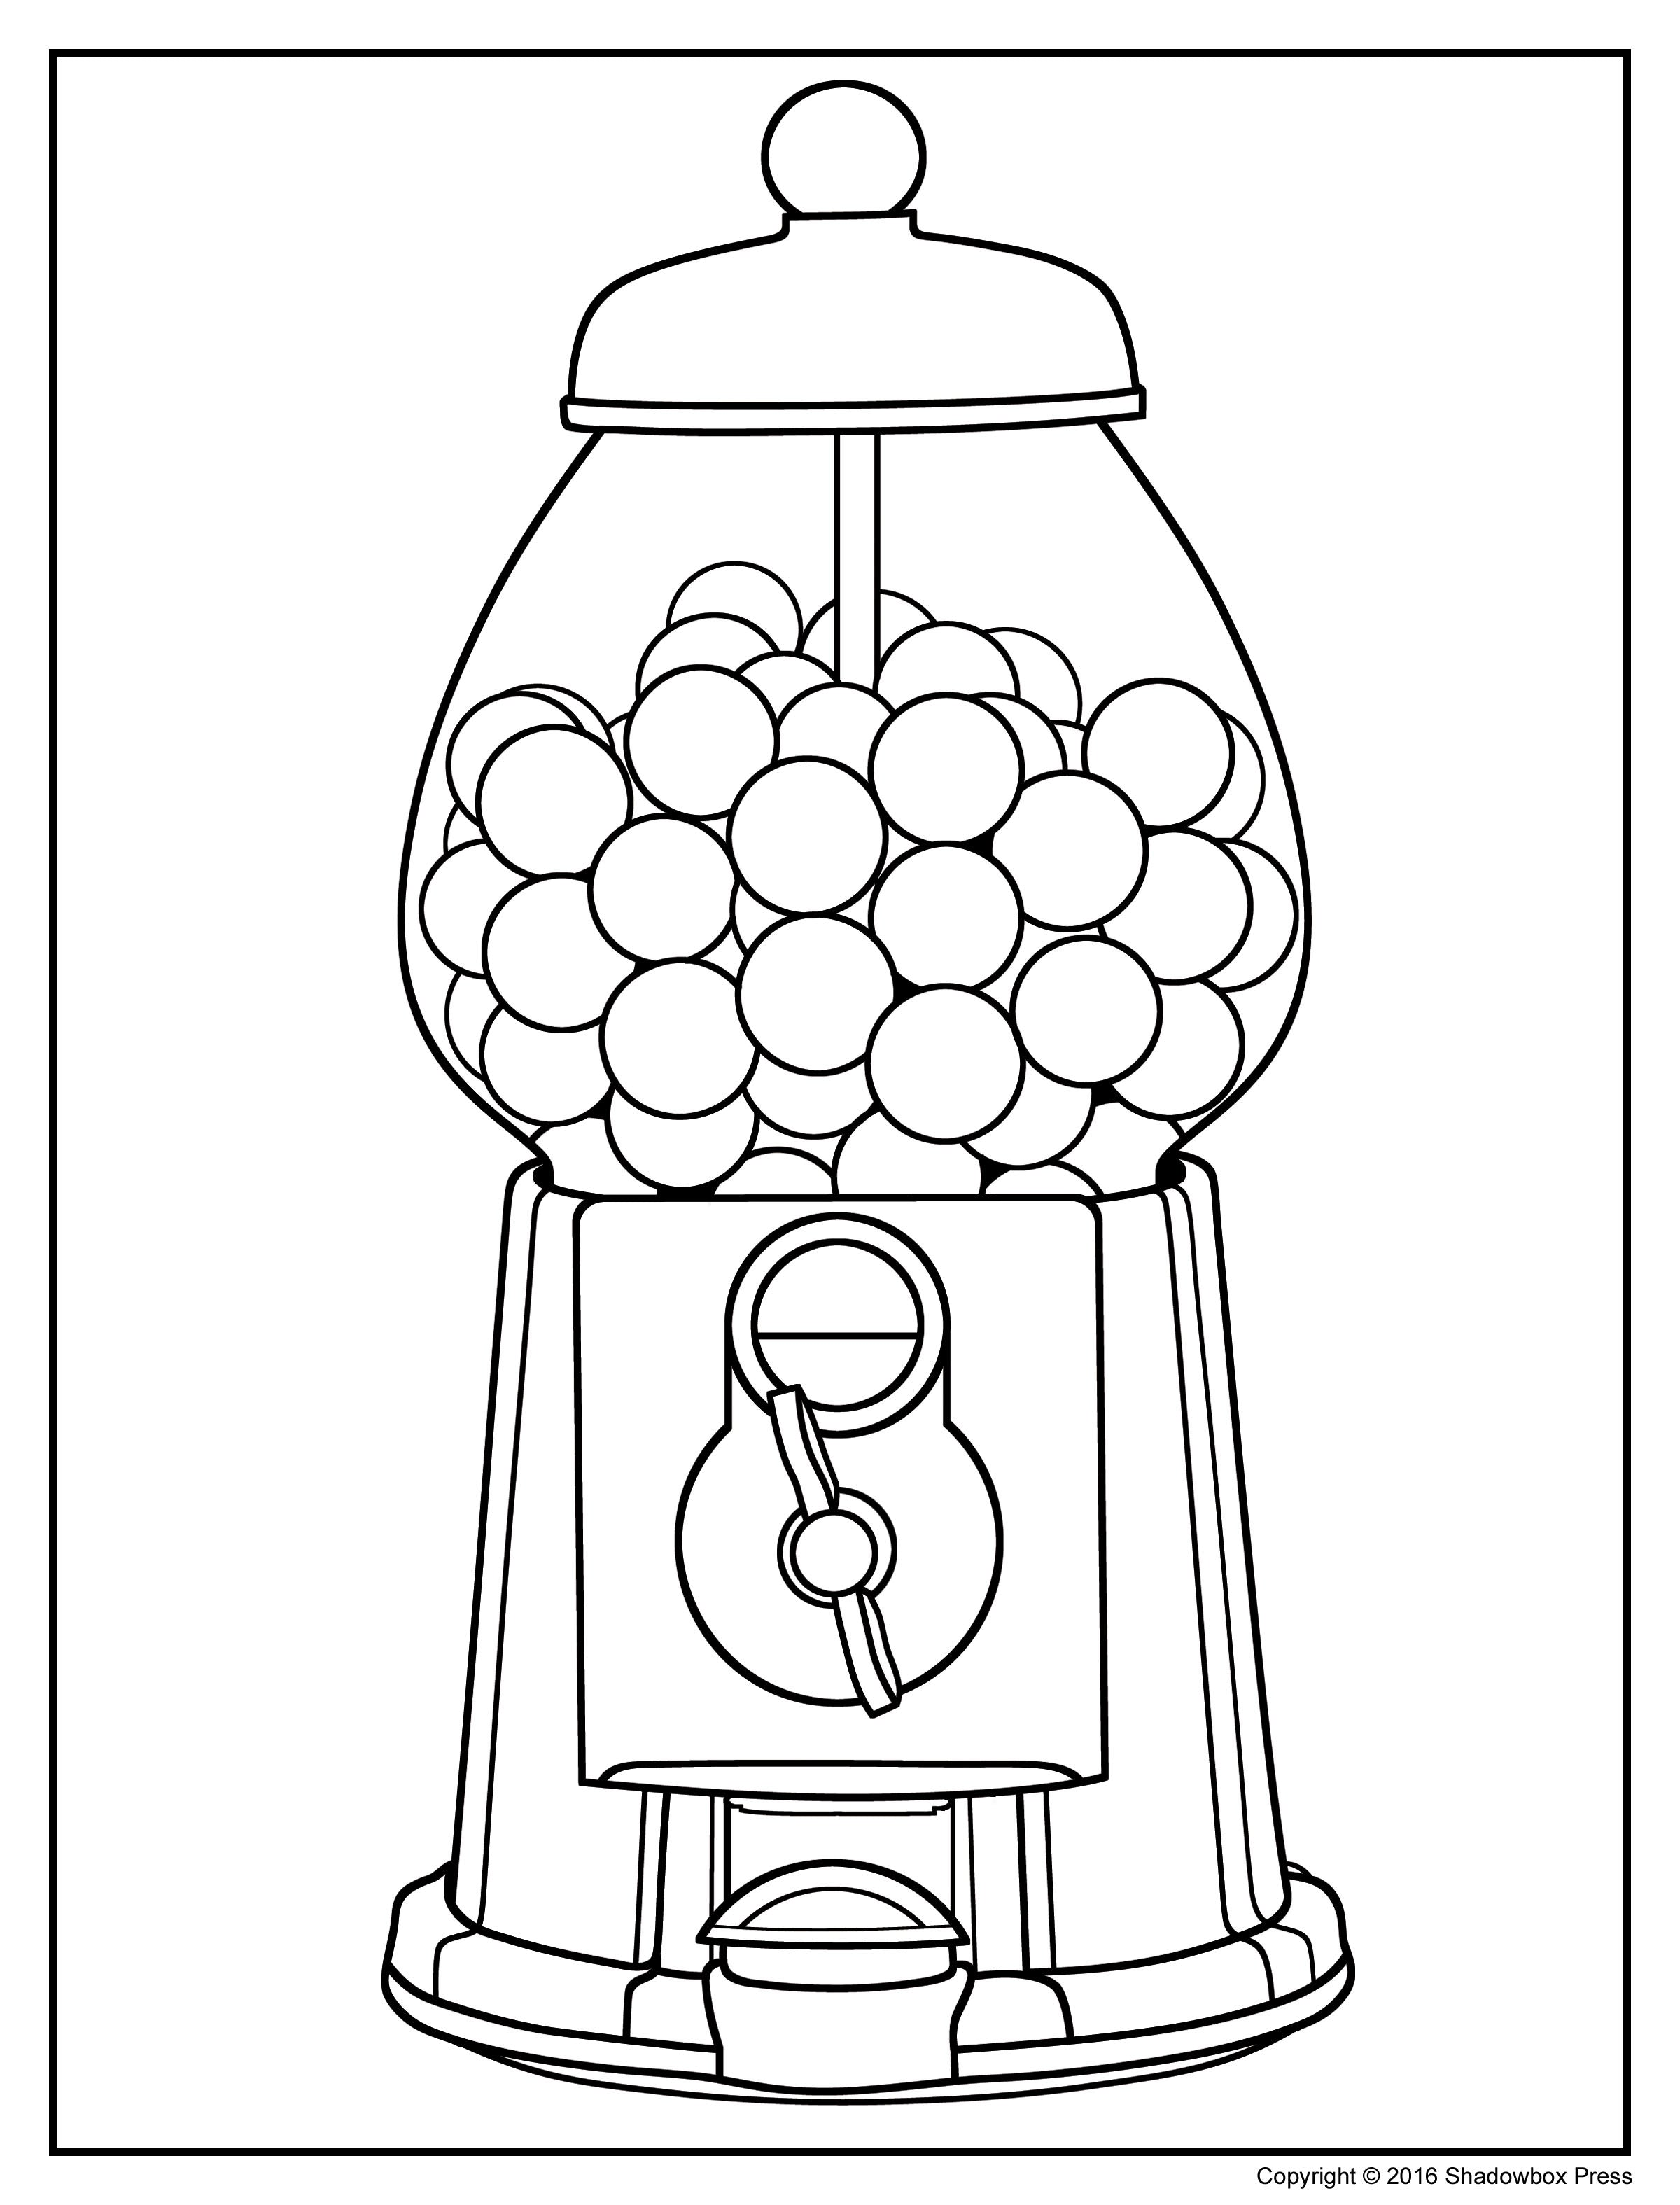 Free Downloadable Coloring Pages for Adults with Dementia Shadowbox Press